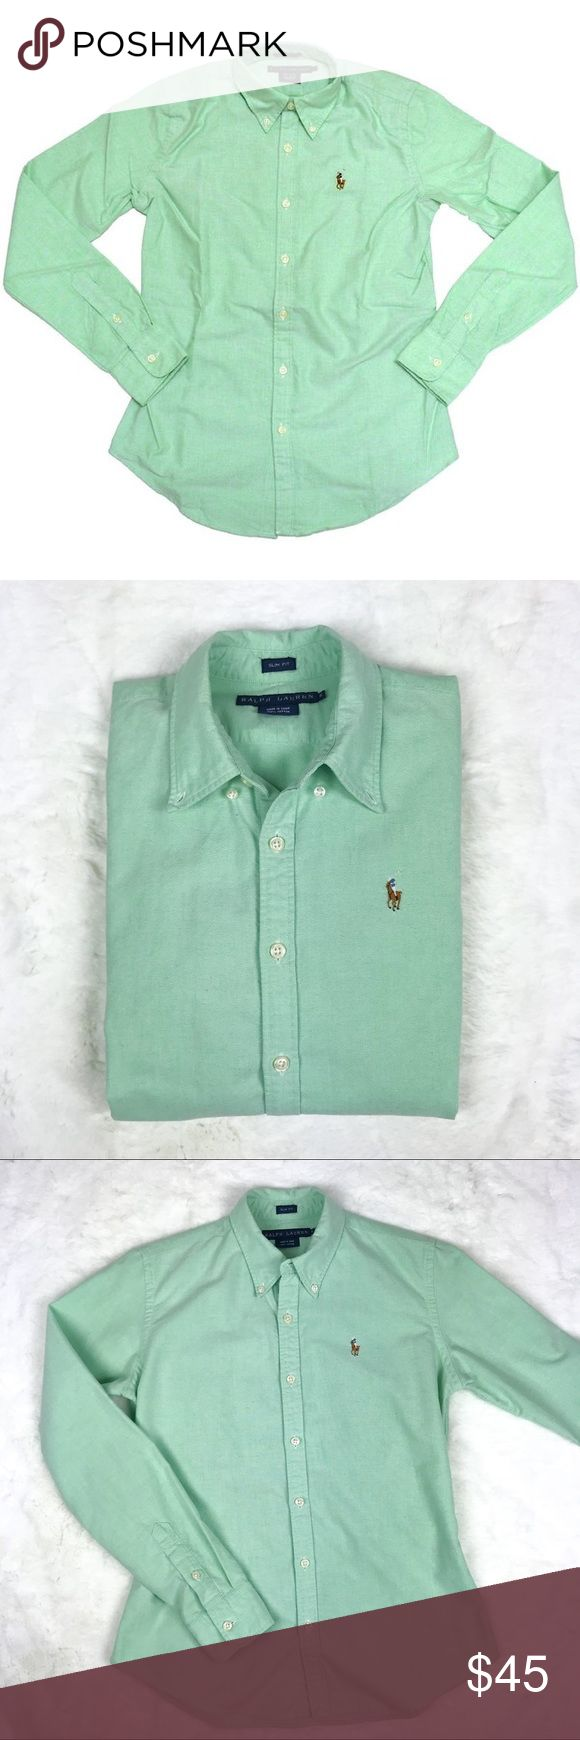 Ralph Lauren Woman's Oxford Slim Fit Shirt Ralph Lauren Women's Oxford Slim Fit Button Down Dress Shirt  These oxfords are a classic for Ralph Lauren and a staple for any woman's wardrobe.  Perfect for any occasion these oxfords are slim fit for a more alluring silhouette.  * 100% Cotton, Oxford.  * light green color  * Slim Fit  * Button Down Collar  * Features Signature Embroidered Pony Logo  * Standard Cuffs  Excellent Condition! Ralph Lauren Tops Button Down Shirts